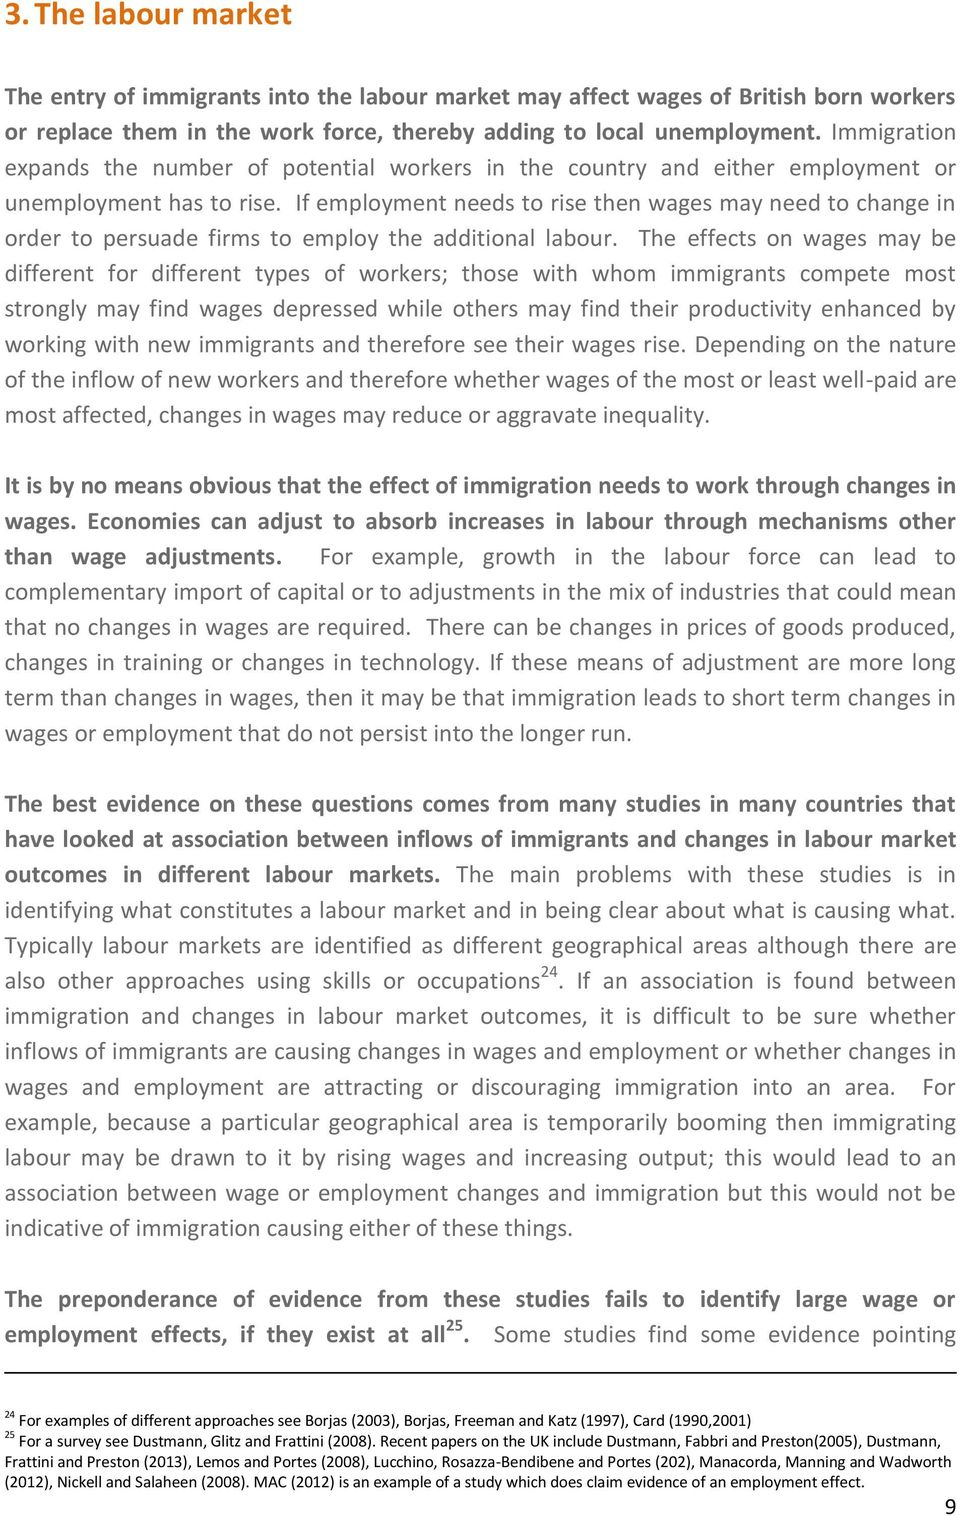 If employment needs to rise then wages may need to change in order to persuade firms to employ the additional labour.